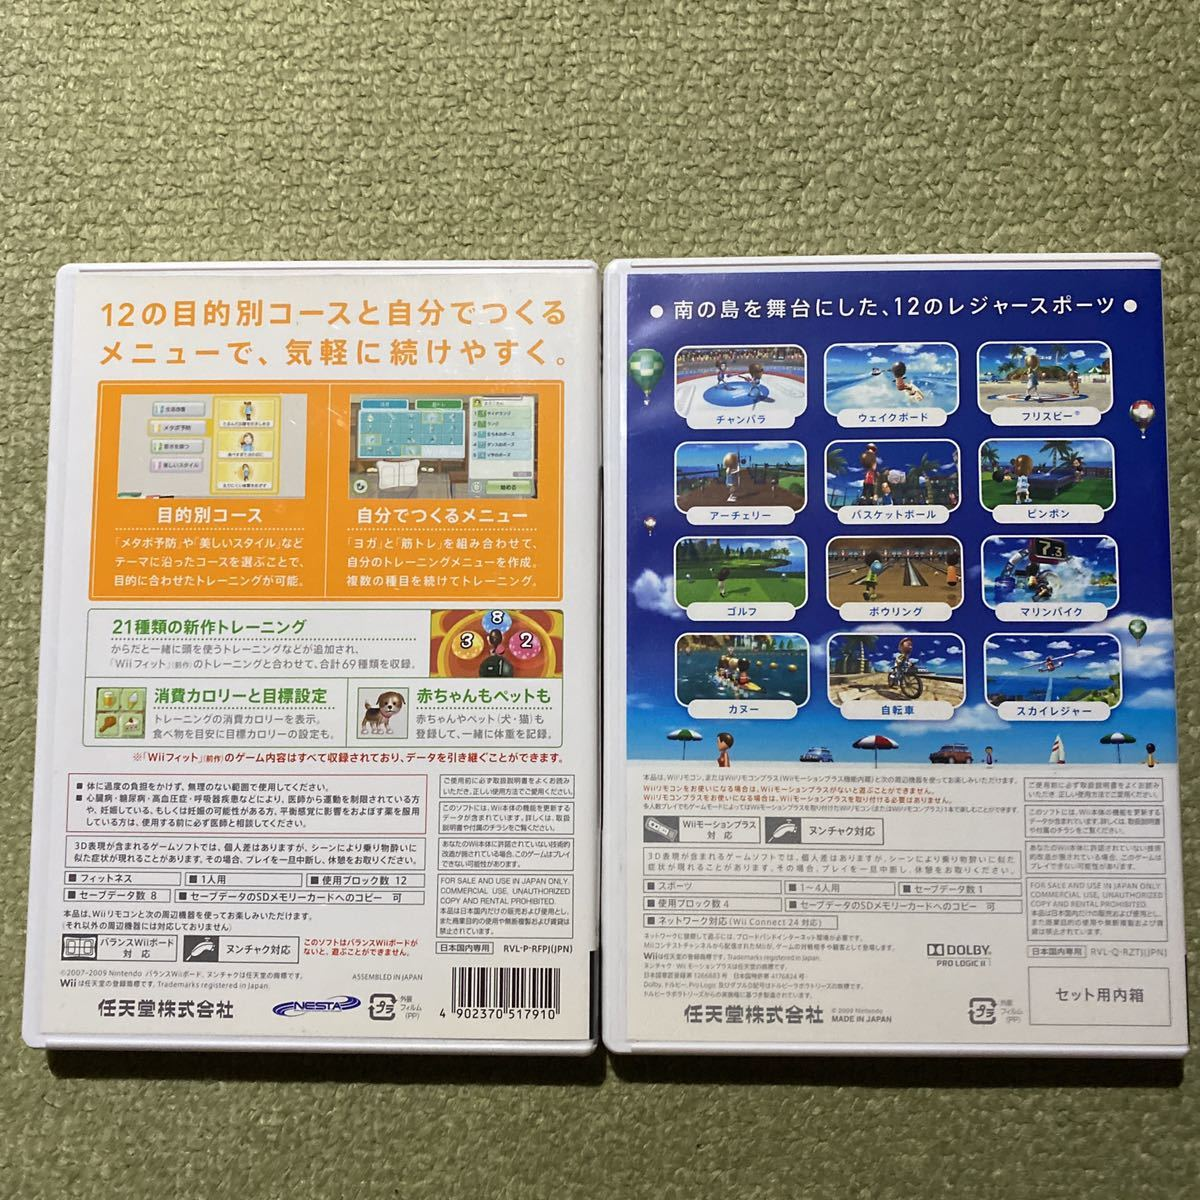 Wii Wiiスポーツリゾート Wiiフィットプラス